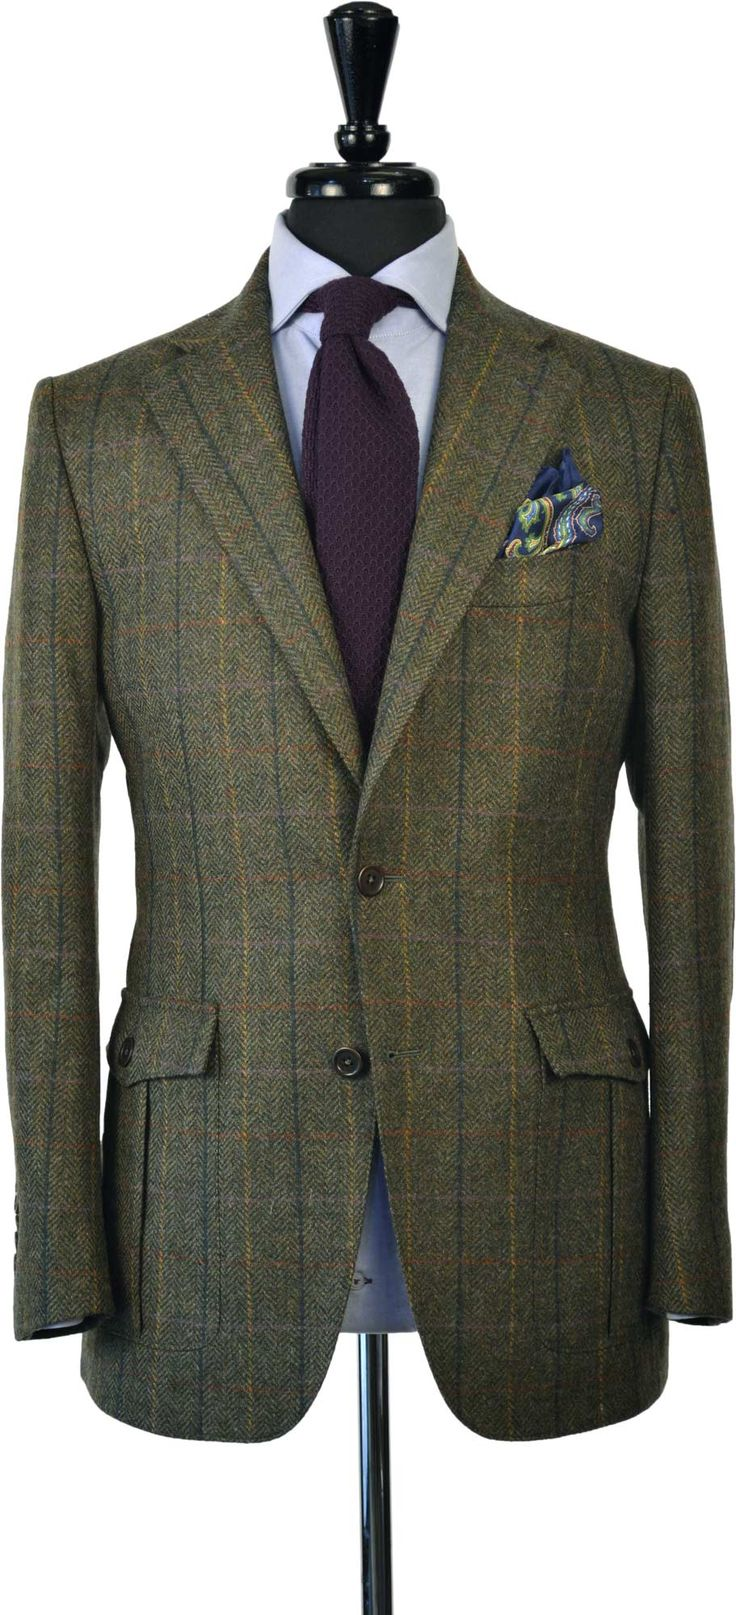 Tweed Hunting Jacket- British inspired, by Beckett & Robb ...